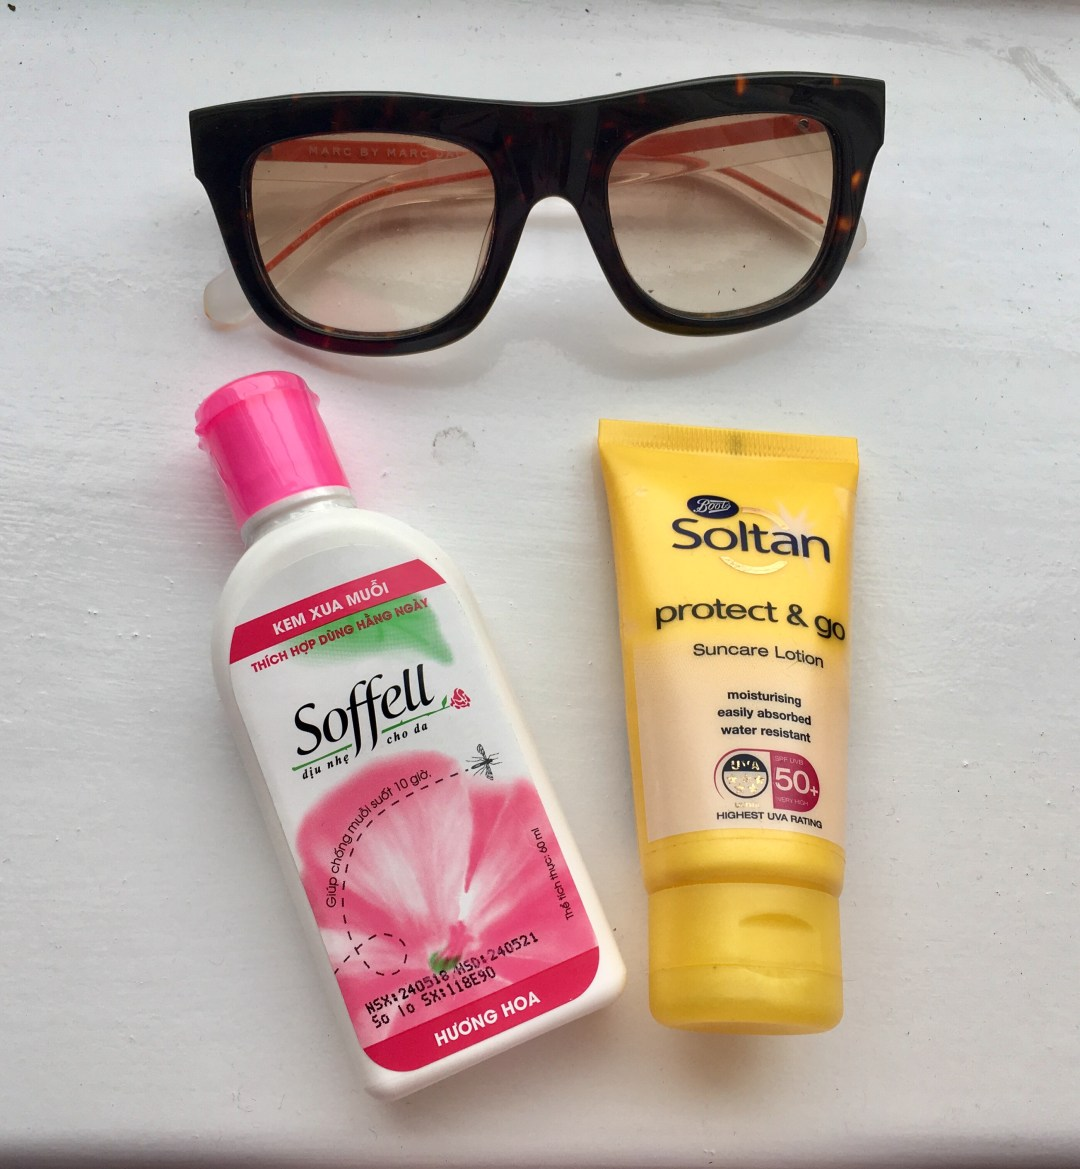 Sunglasses, sunscreen, and soffell insect repellent